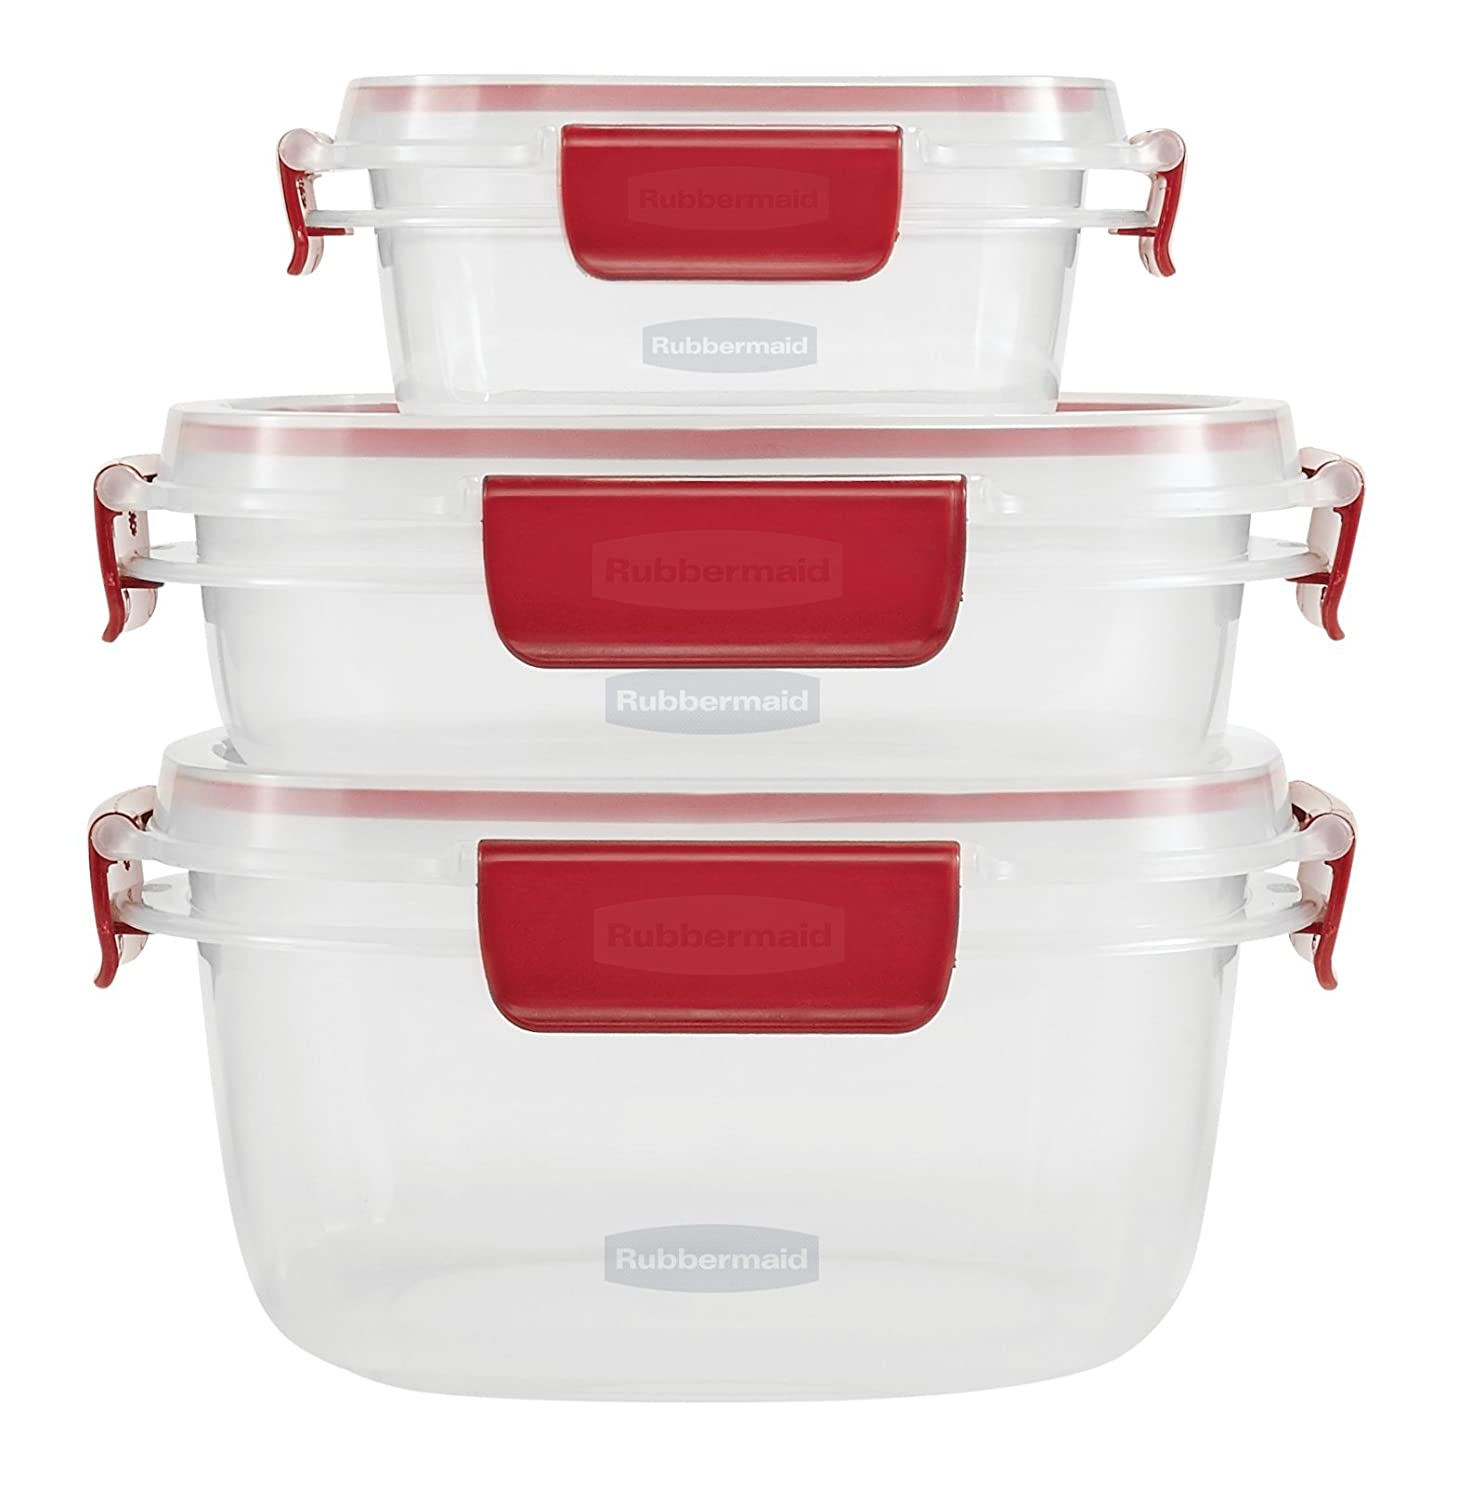 Rubbermaid Easy Find Lids 6-Piece Food Storage Container Set, Clear with Red Tabs